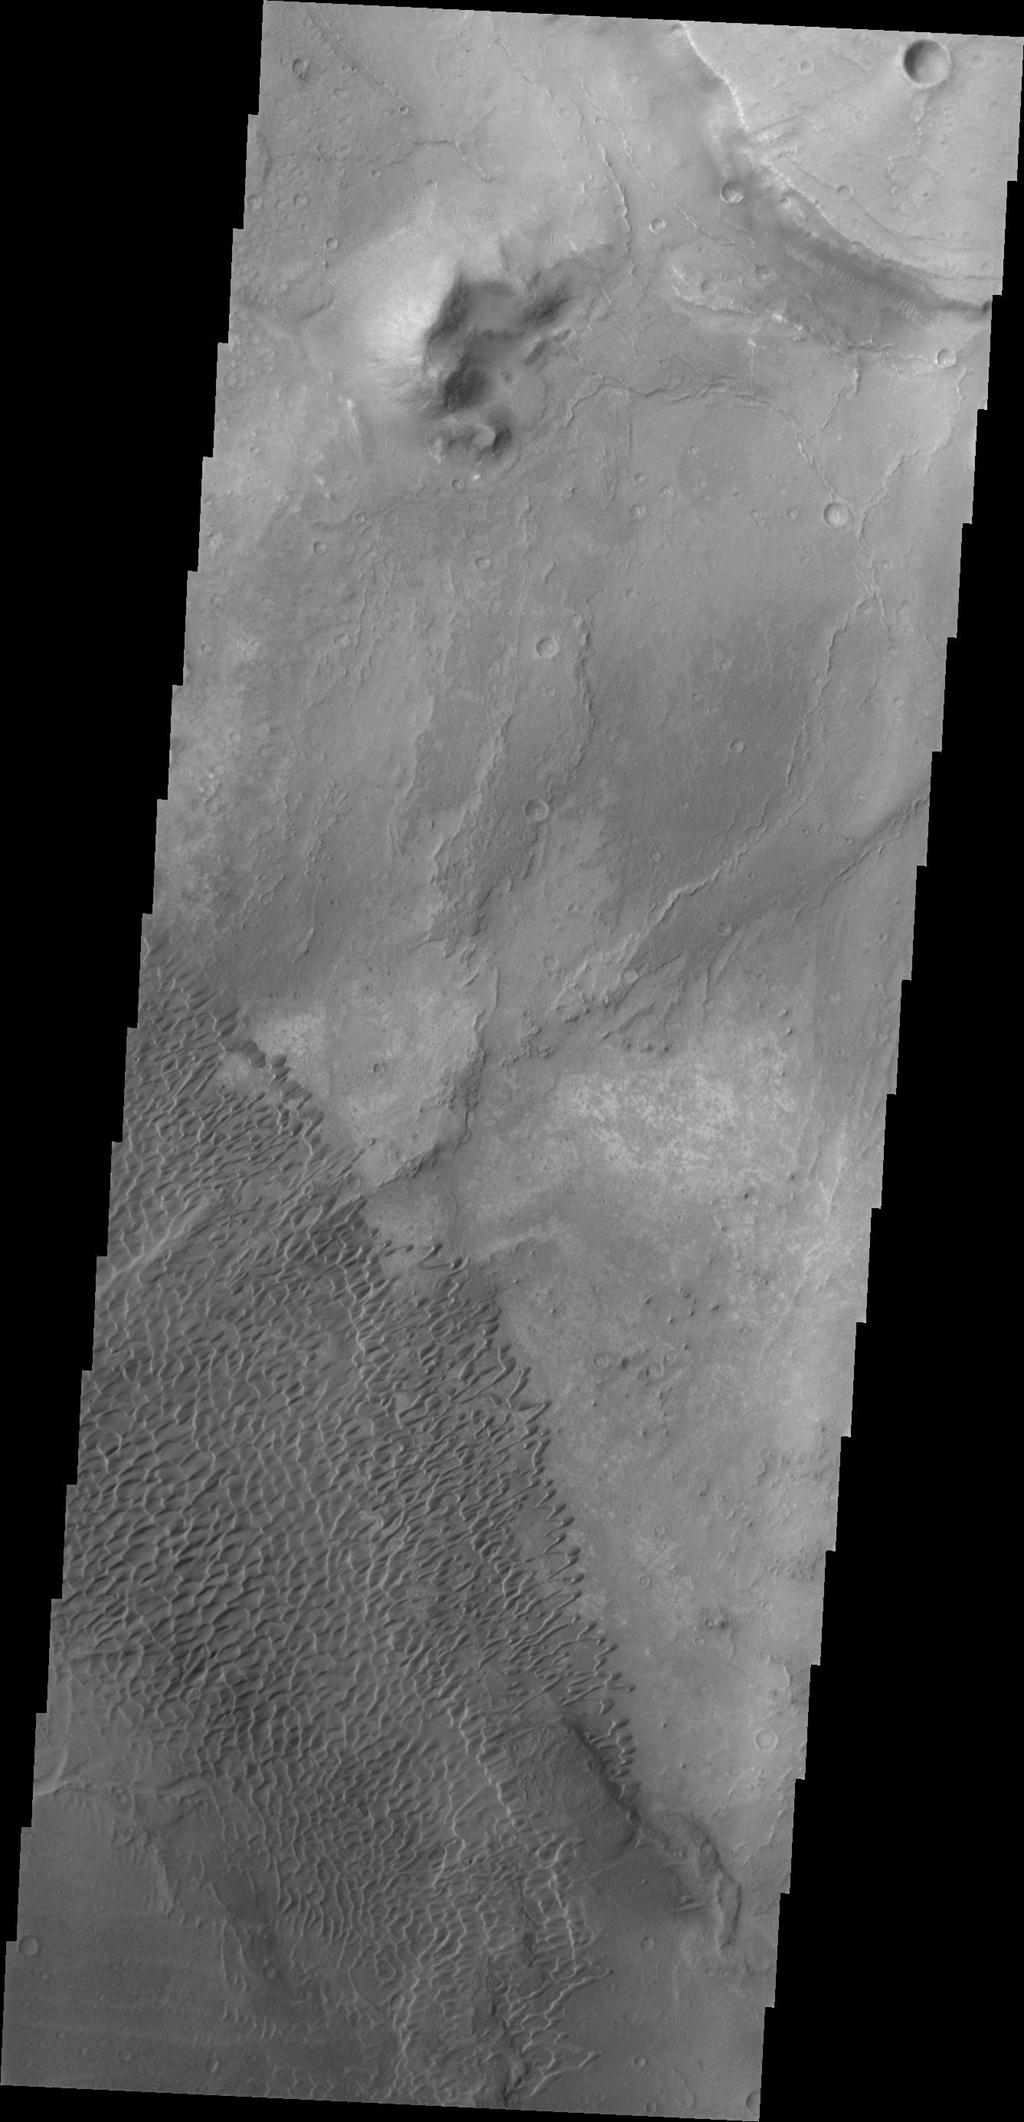 The dunes in this image from NASA's Mars Odyssey are located in Nili Patera, one of the two patera of Syrtis Major Planum.